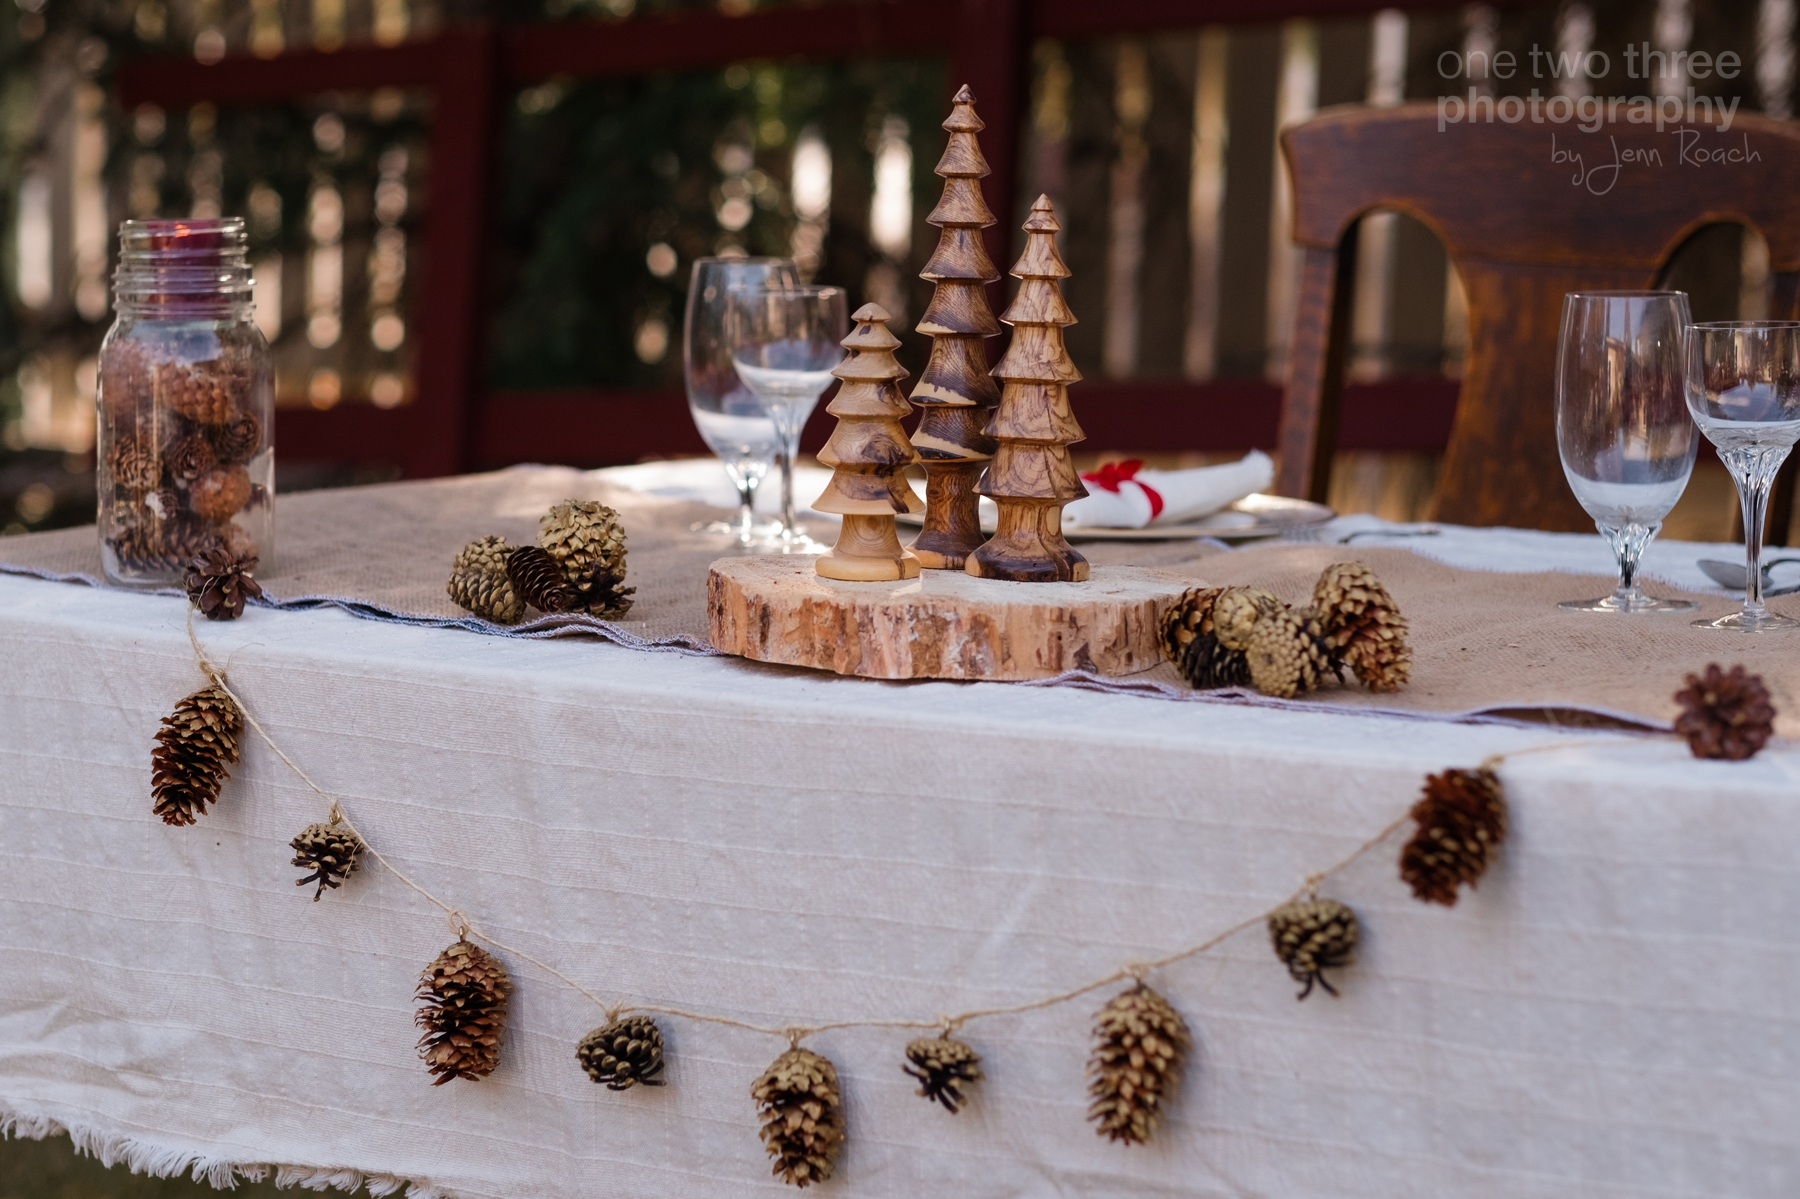 Rustic wedding table settings with pinecones and wood place settings